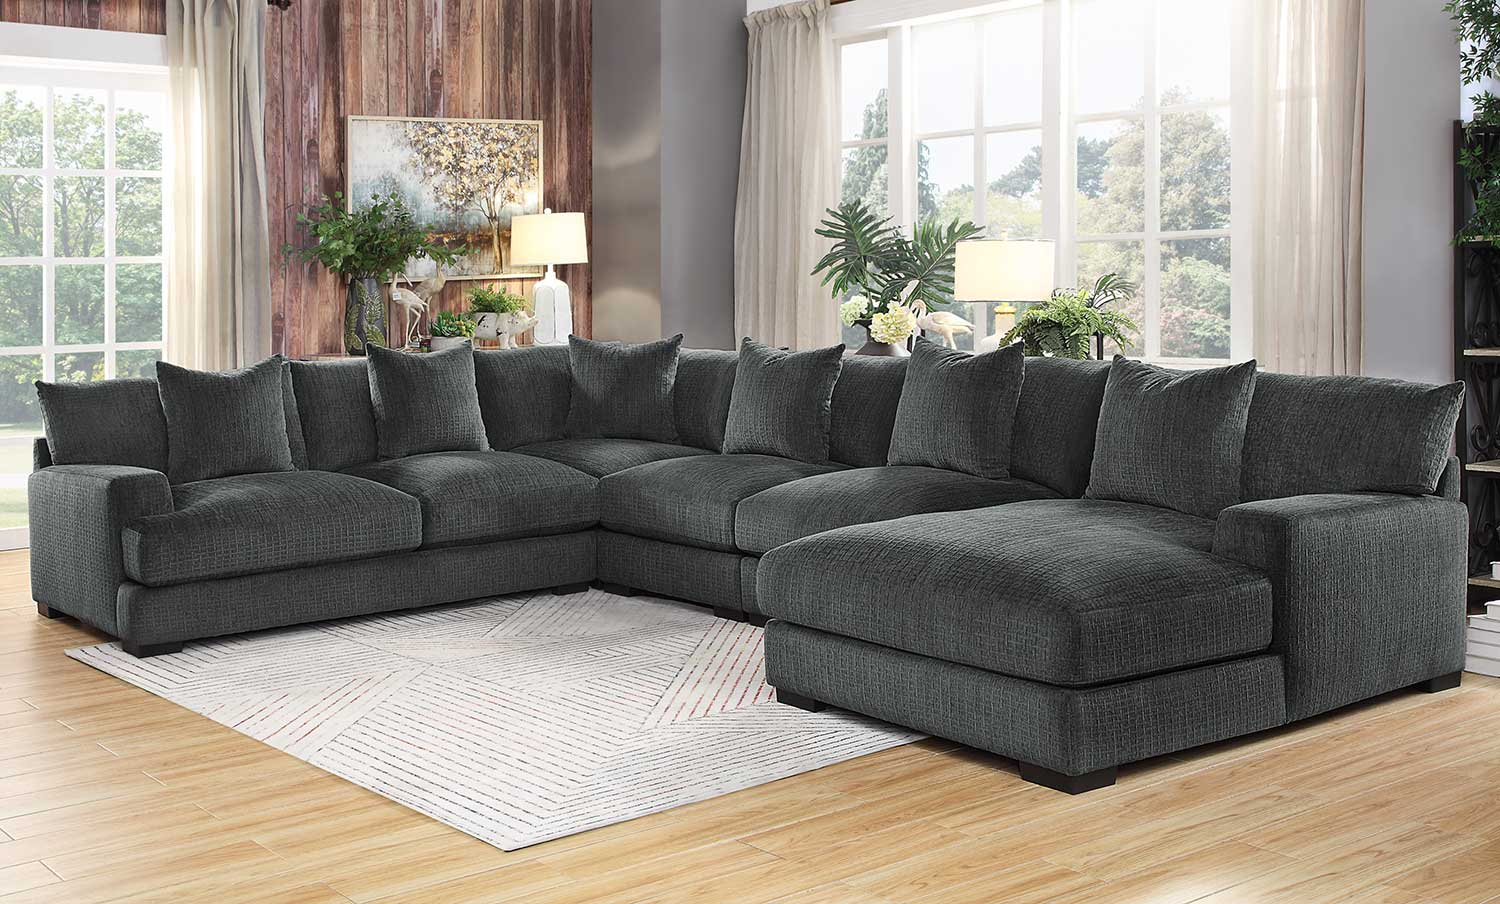 Homelegance Worchester Sectional Sofa Set - Dark gray